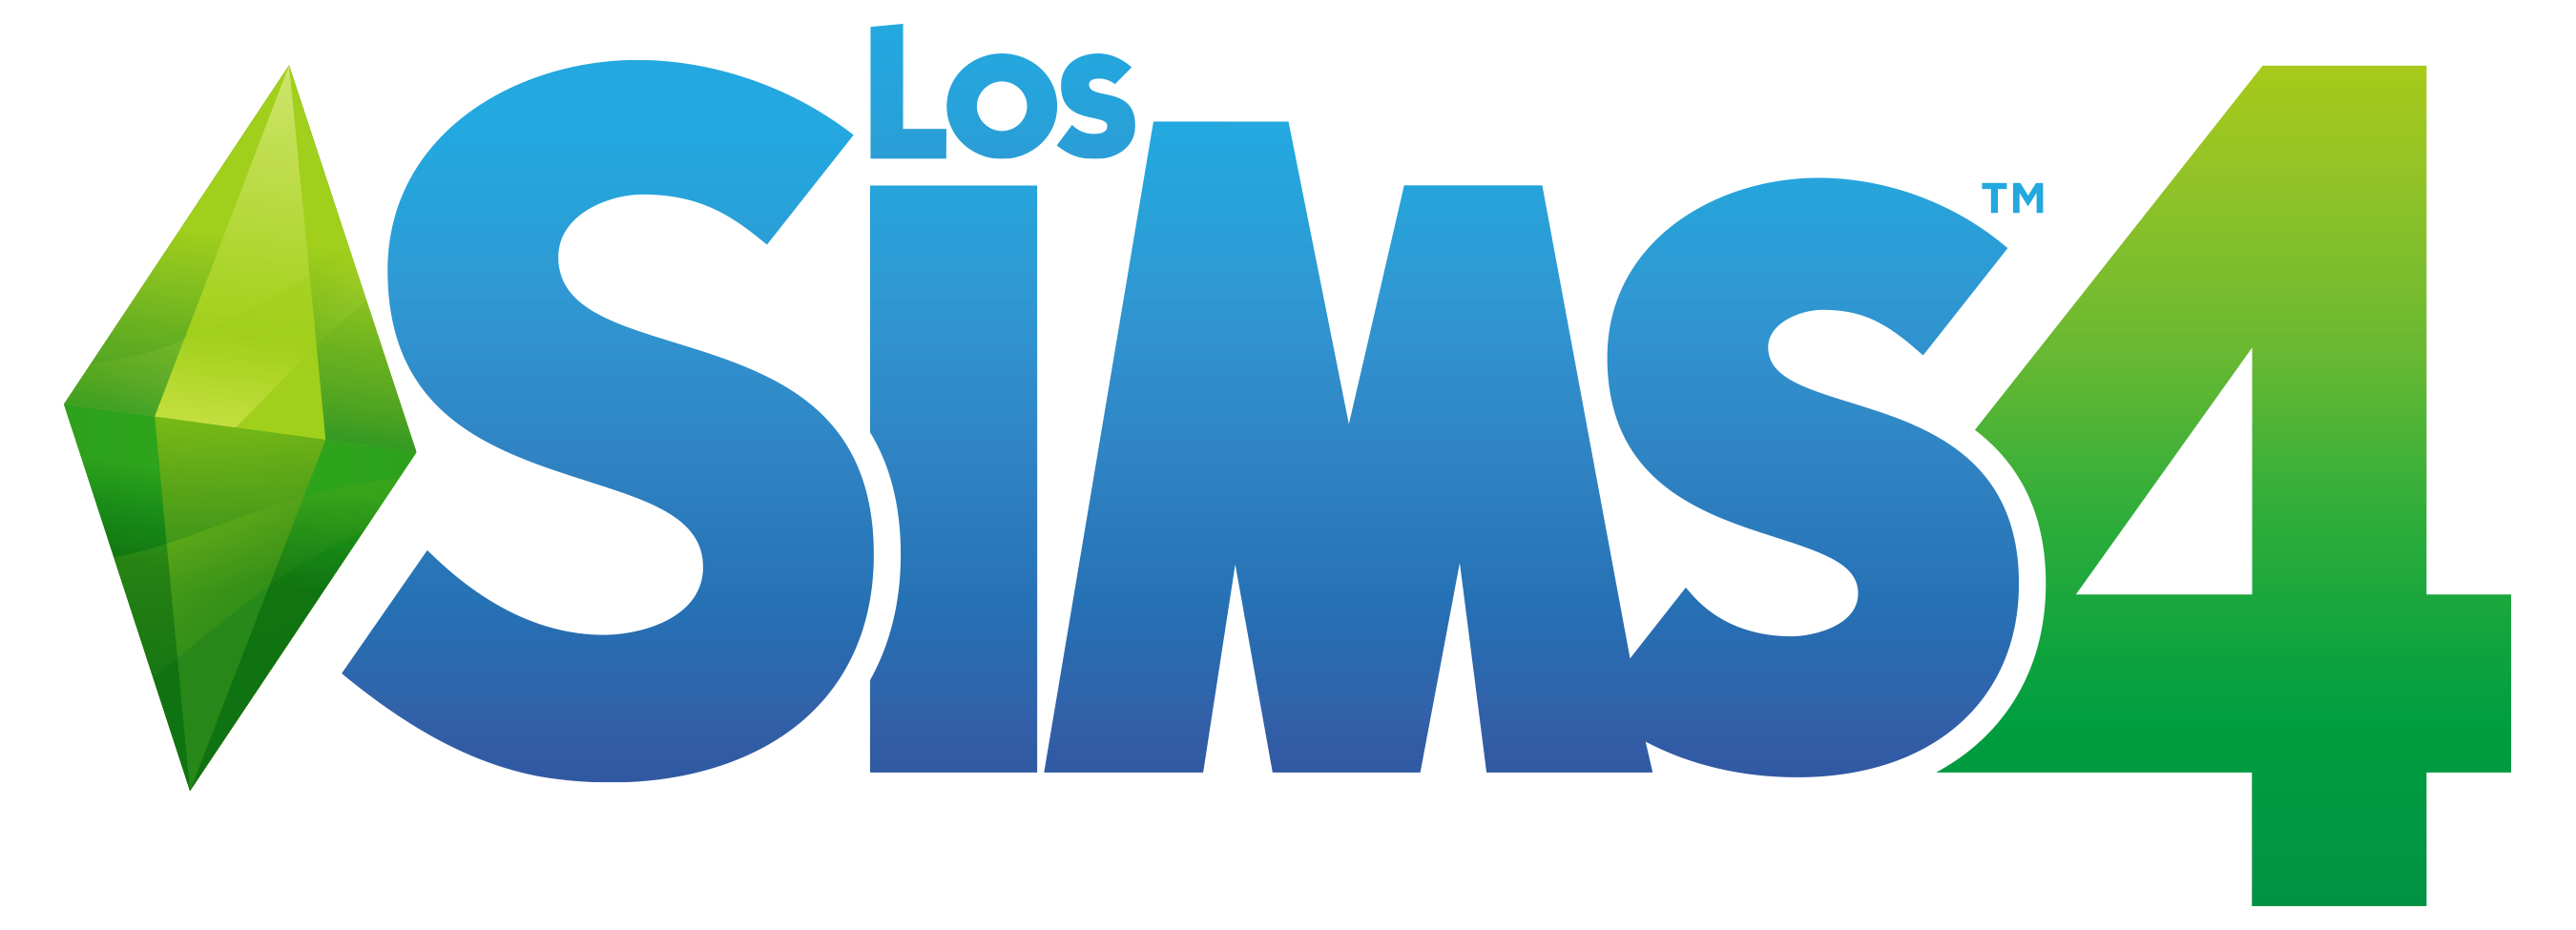 Banner sims 4